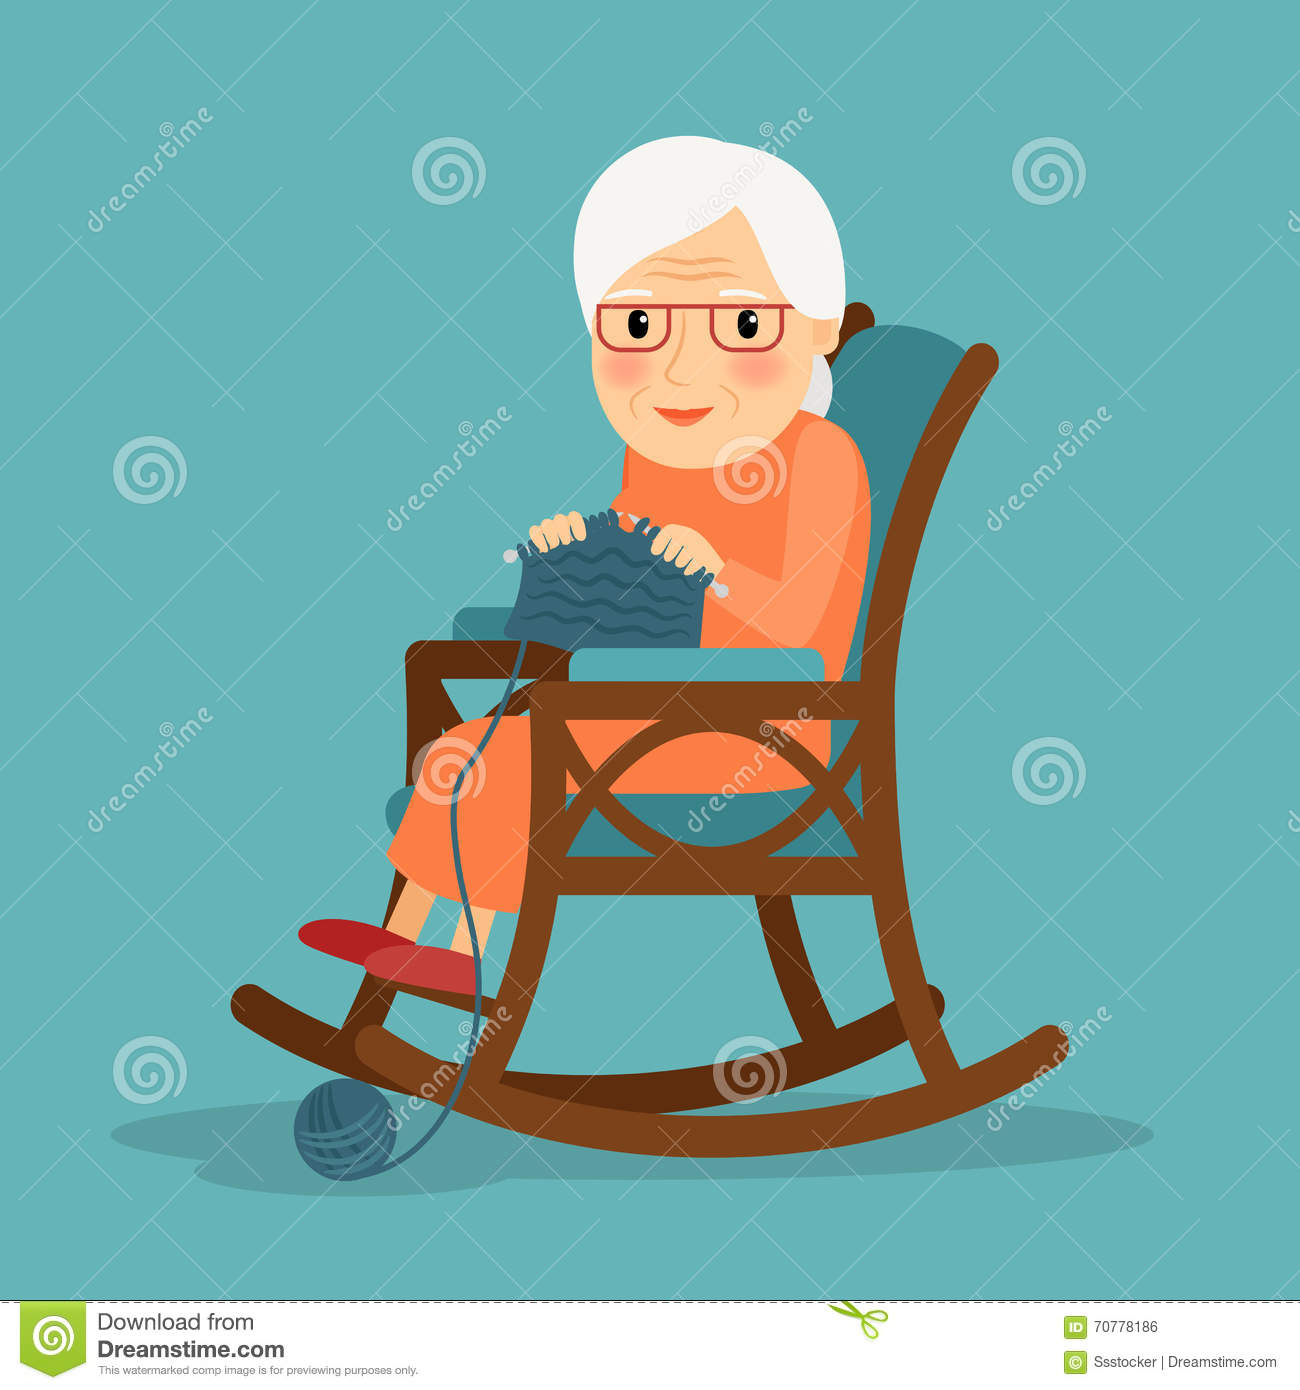 Knitting Granny Clipart : Old woman knitting stock vector image